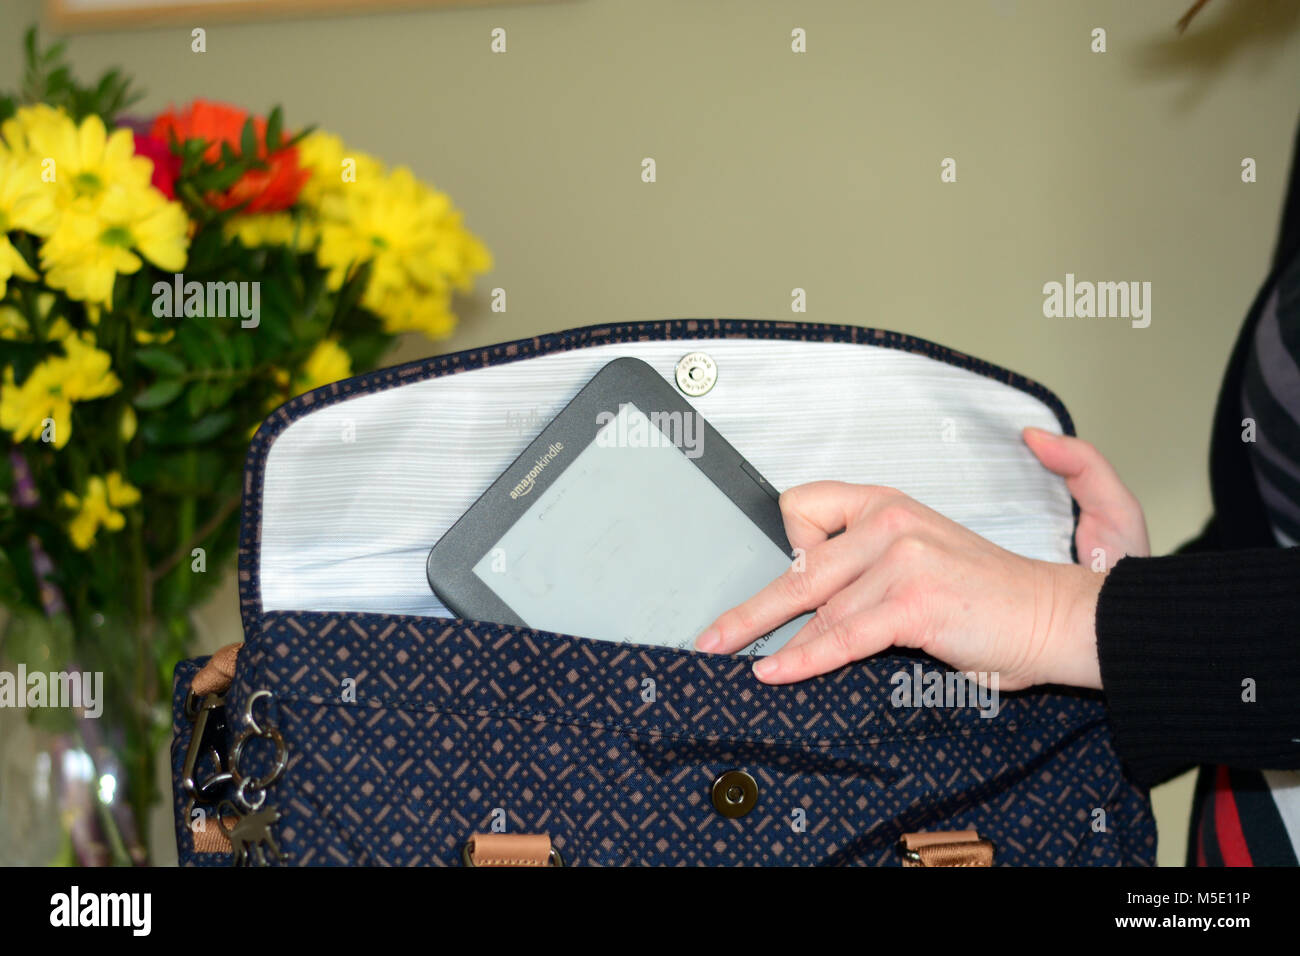 Woman taking a Kindle e-reader out of her handbag - Stock Image